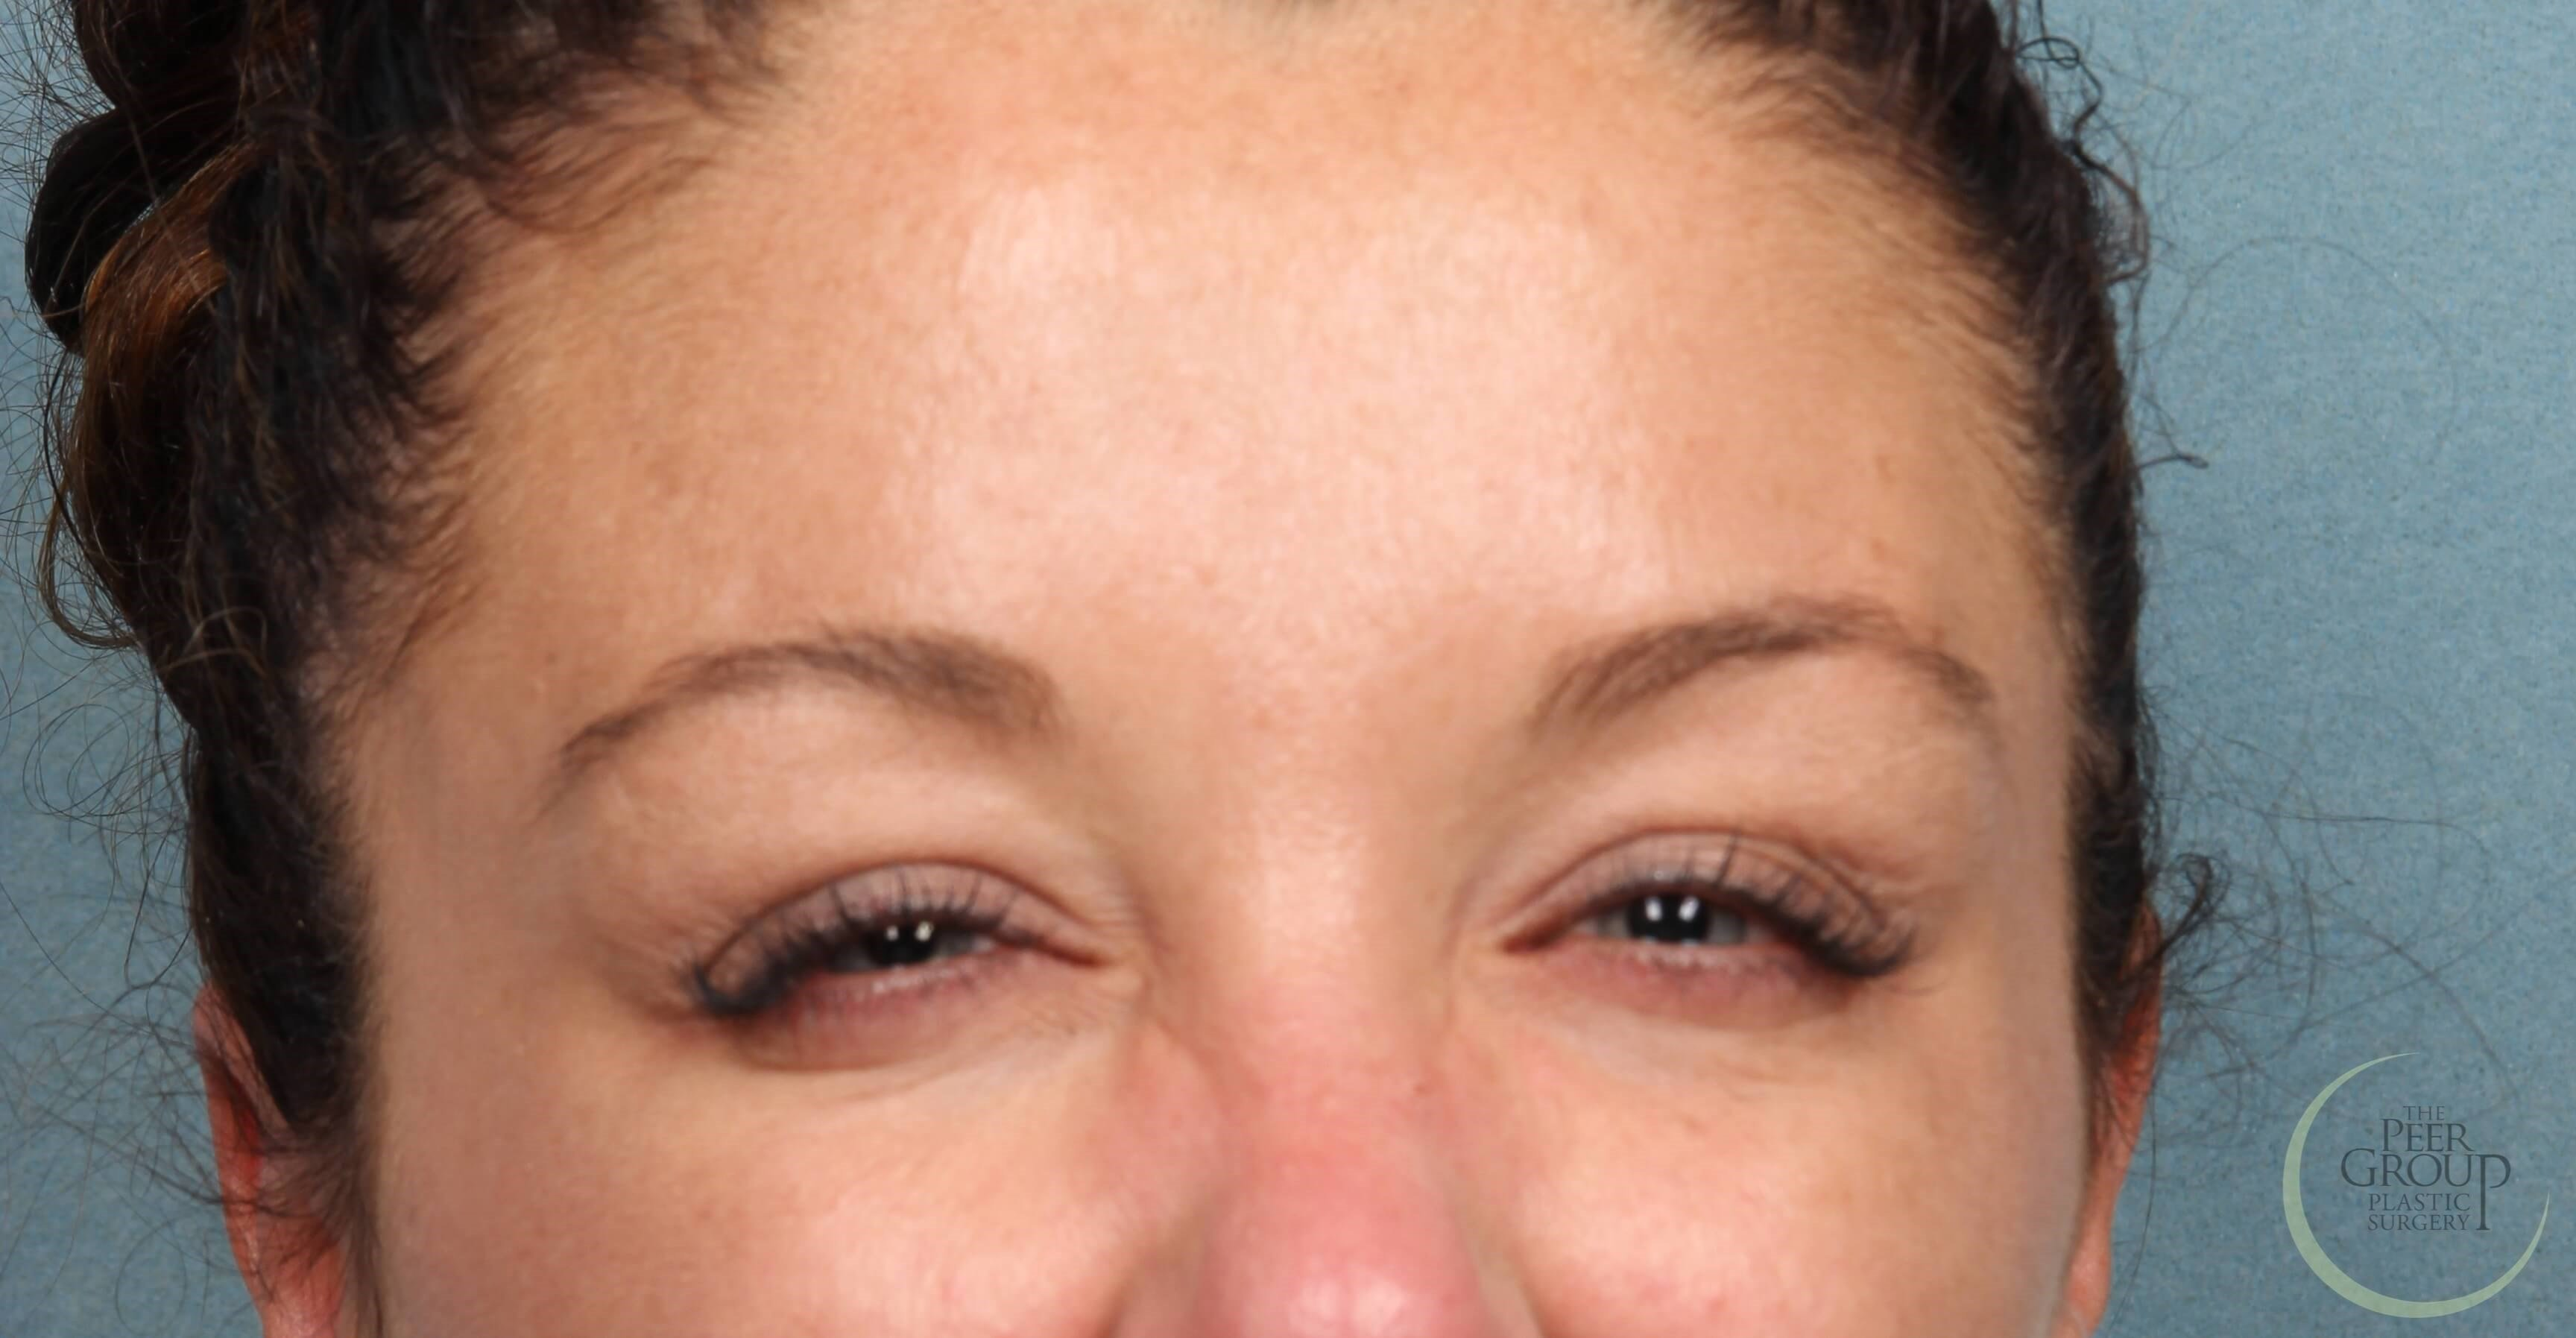 NJ Botox 1 Week After Botox